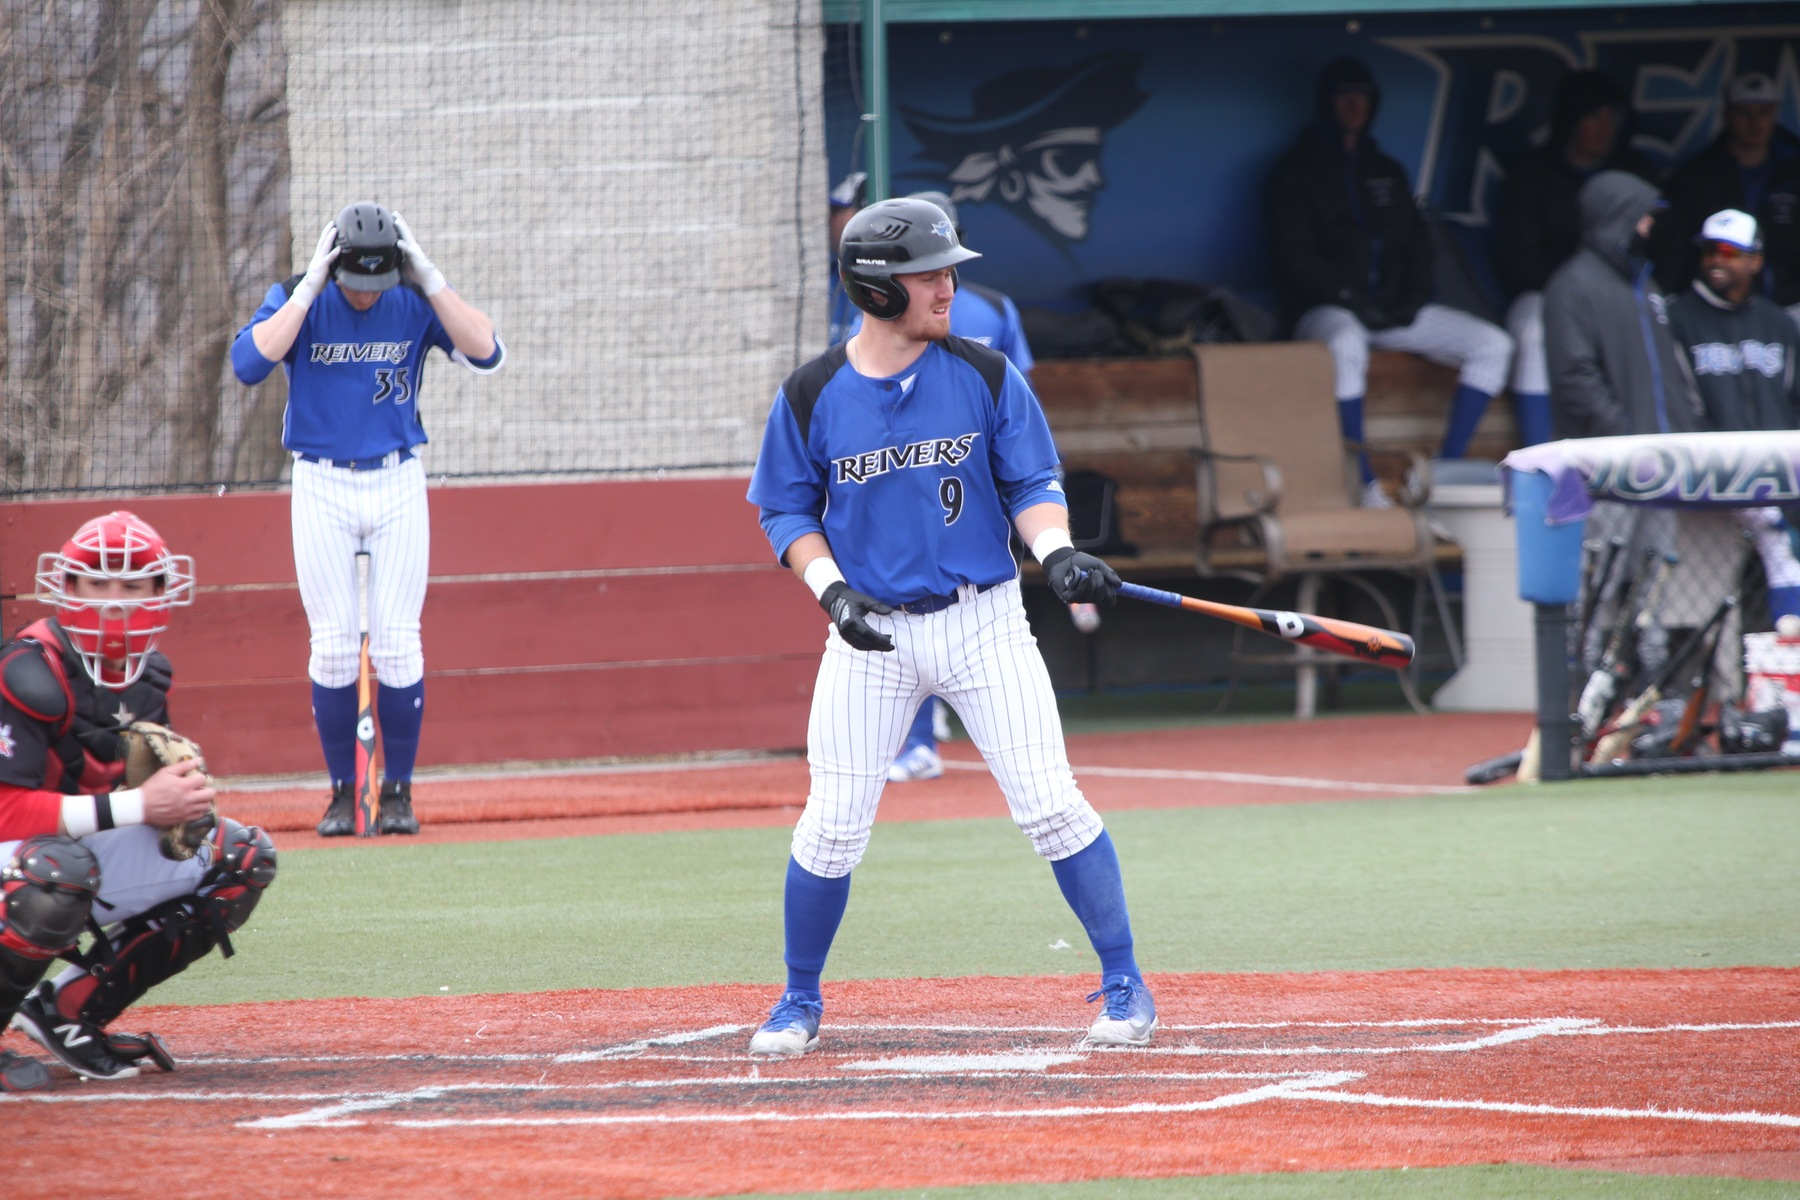 Reivers Pound Cloud County 13-6 in Mid-Week Action